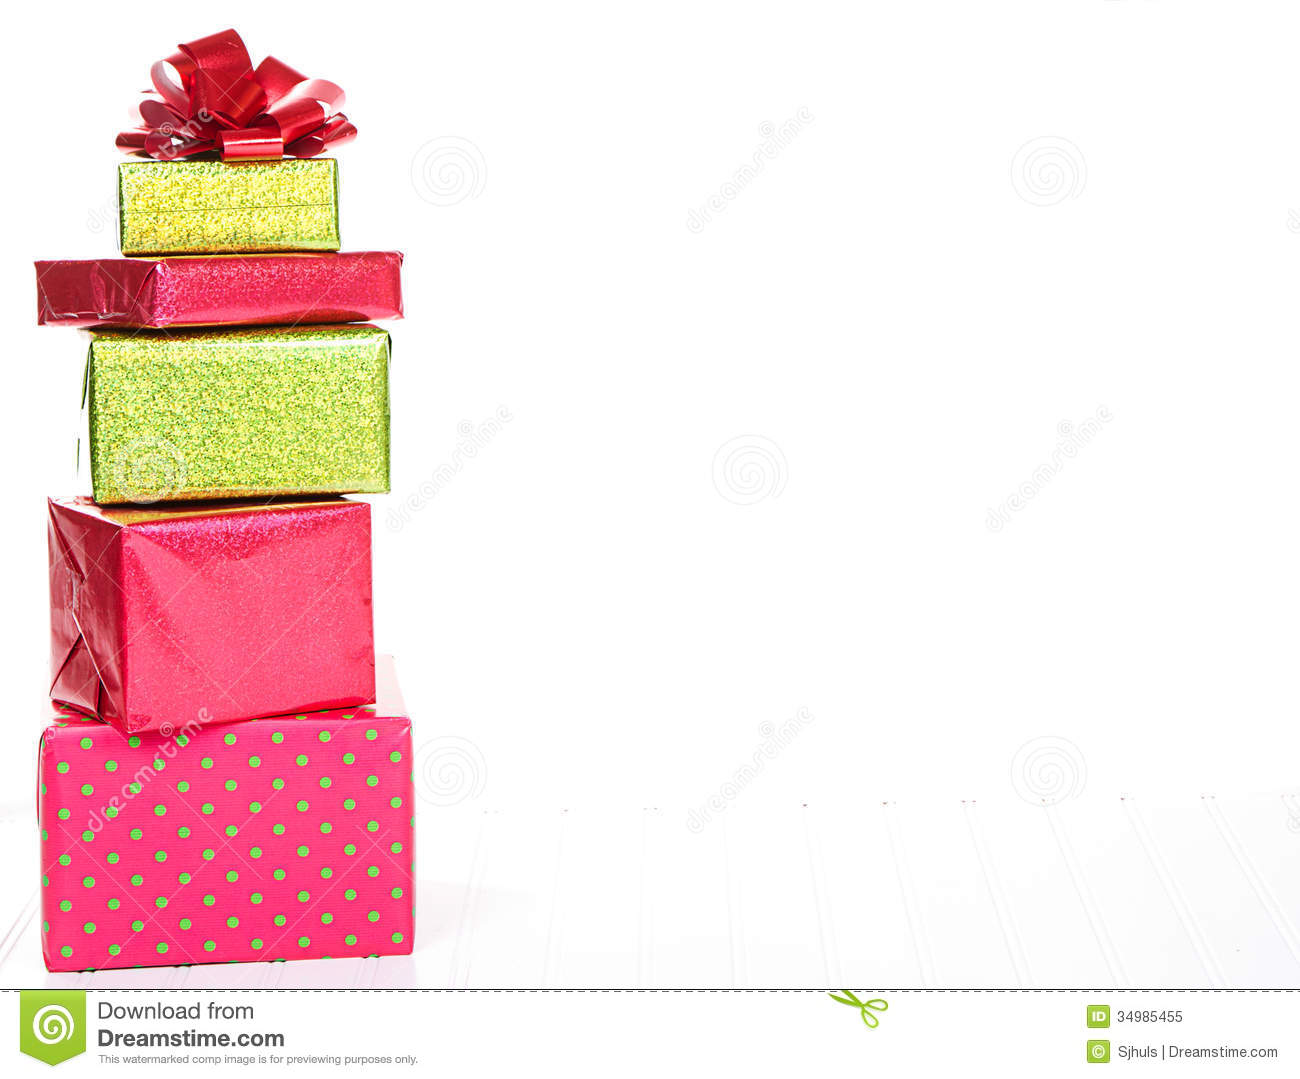 Christmas Presents Stacked Royalty Free Stock Photo - Image: 34985455